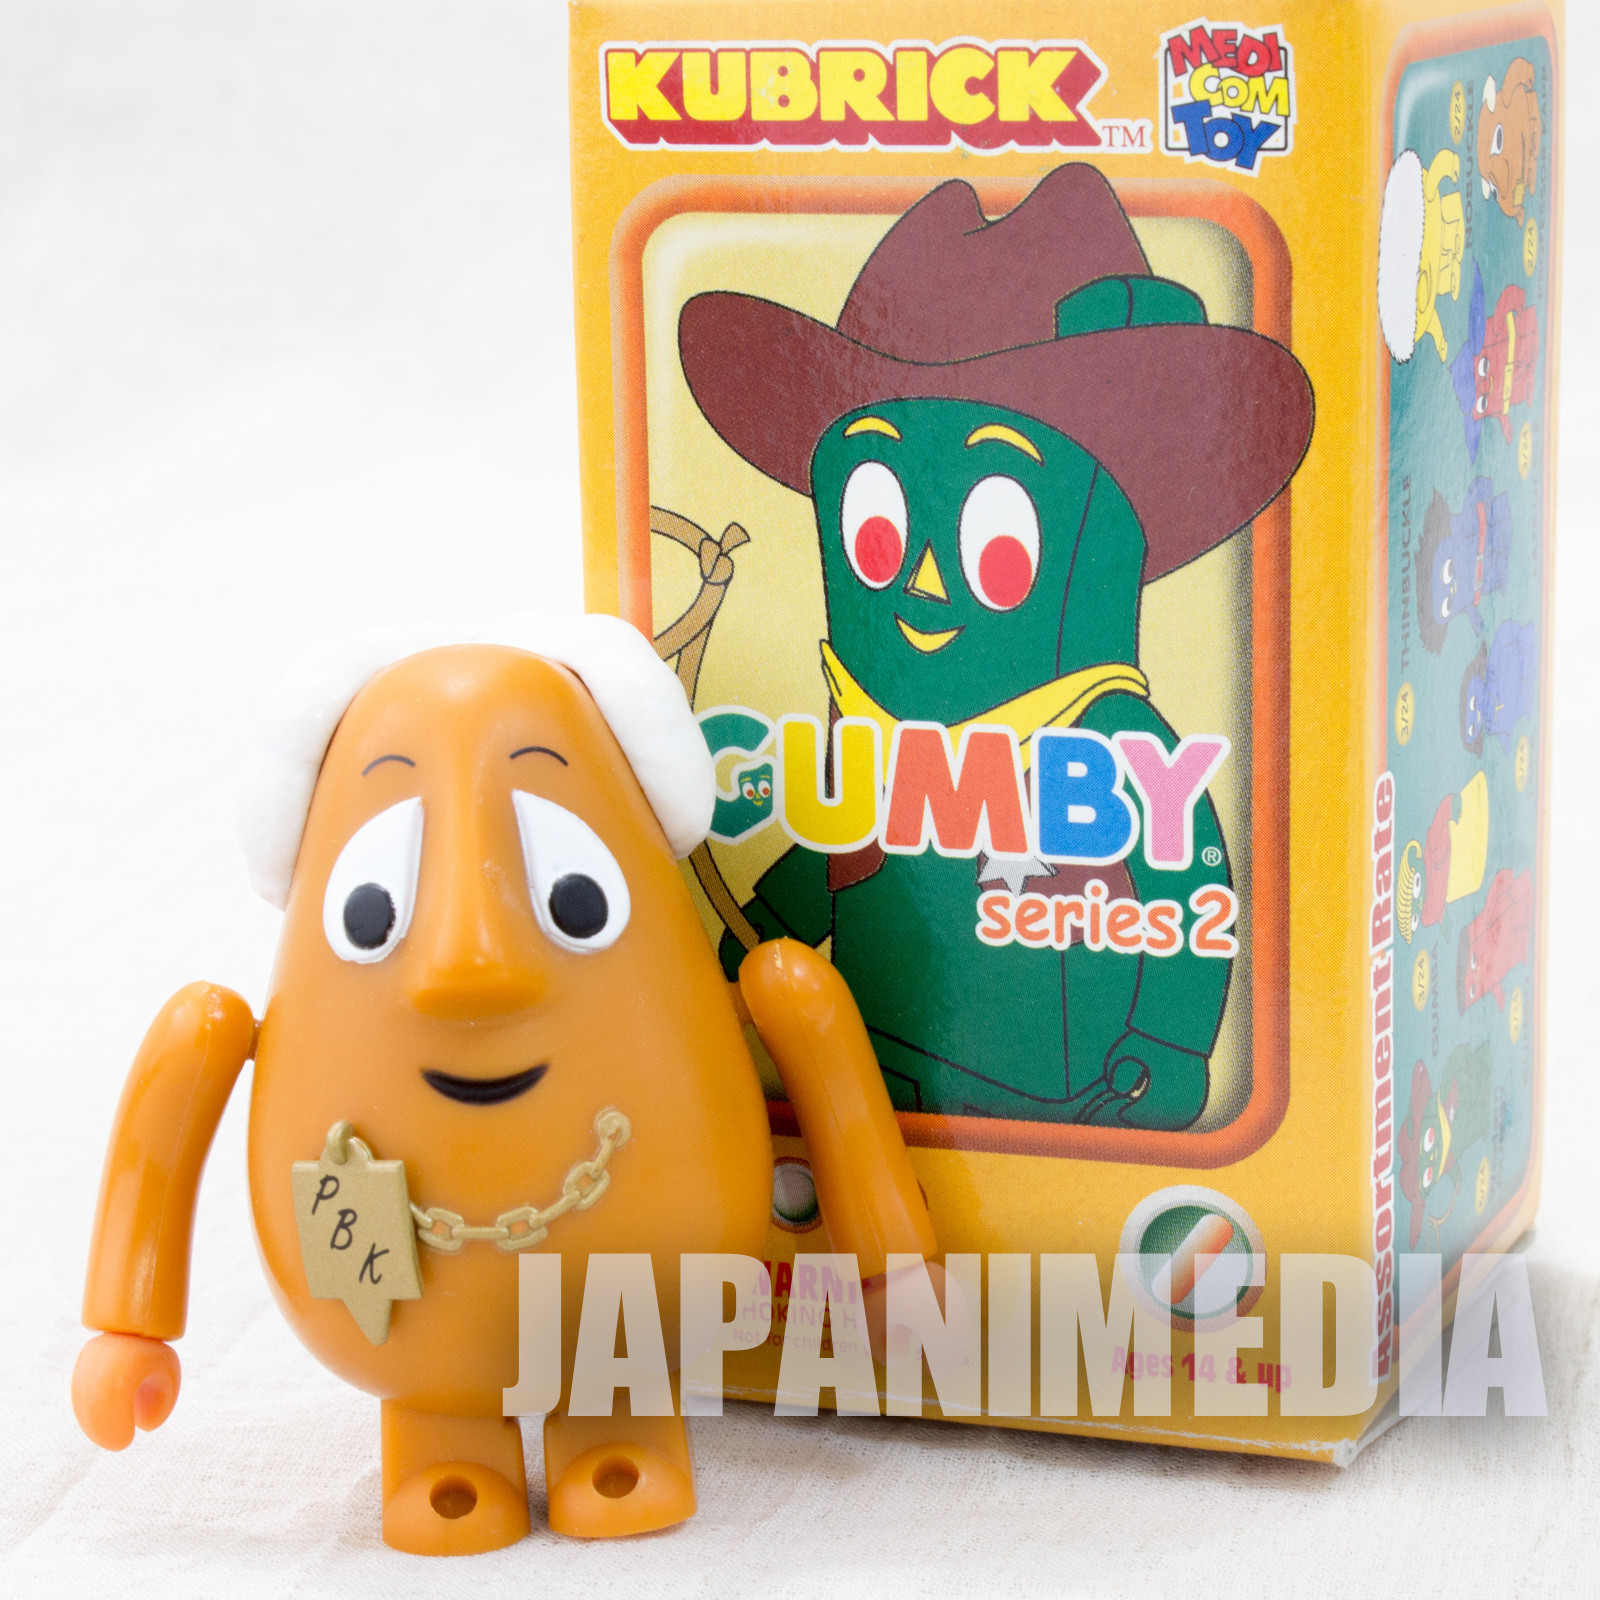 GUMBY Professor Kapp Figure series 2 Kubrick Medicom Toy JAPAN